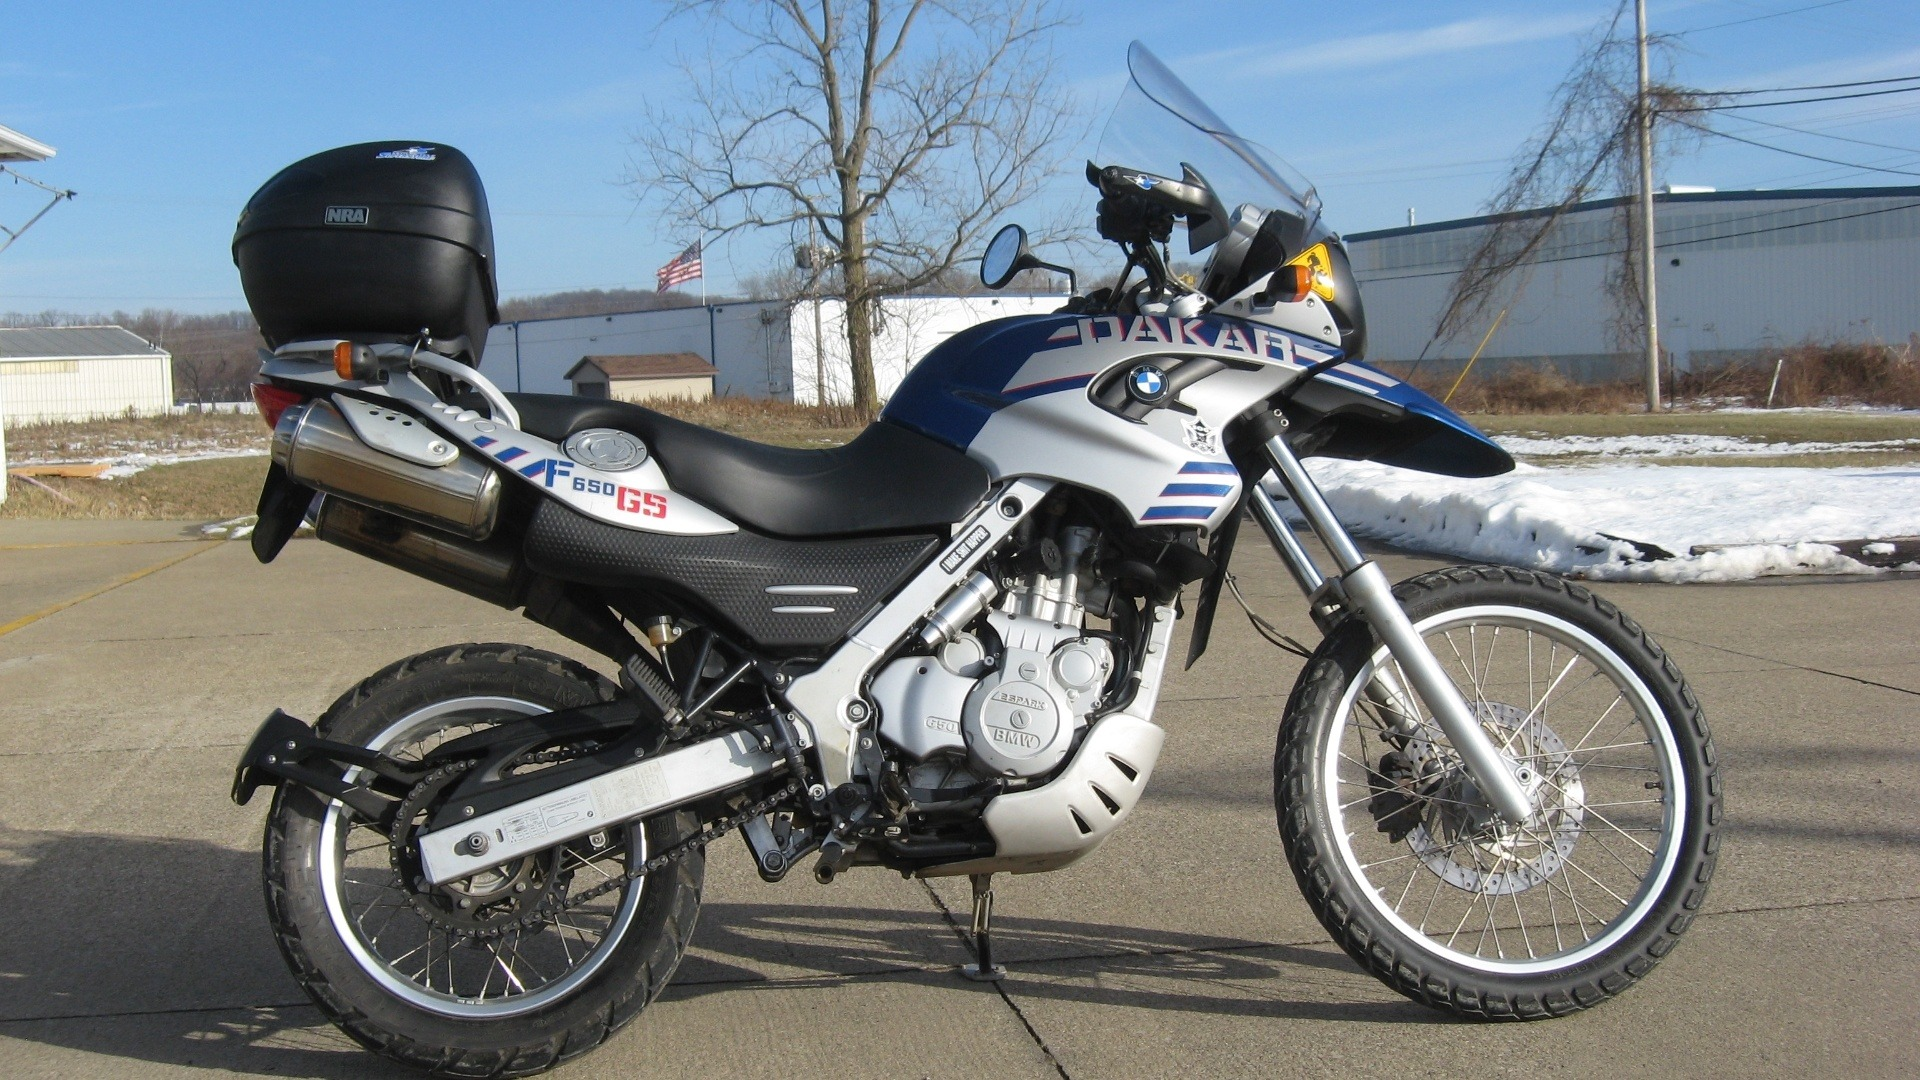 New 2005 Bmw F650gs Dakar Motorcycles In New Philadelphia Oh